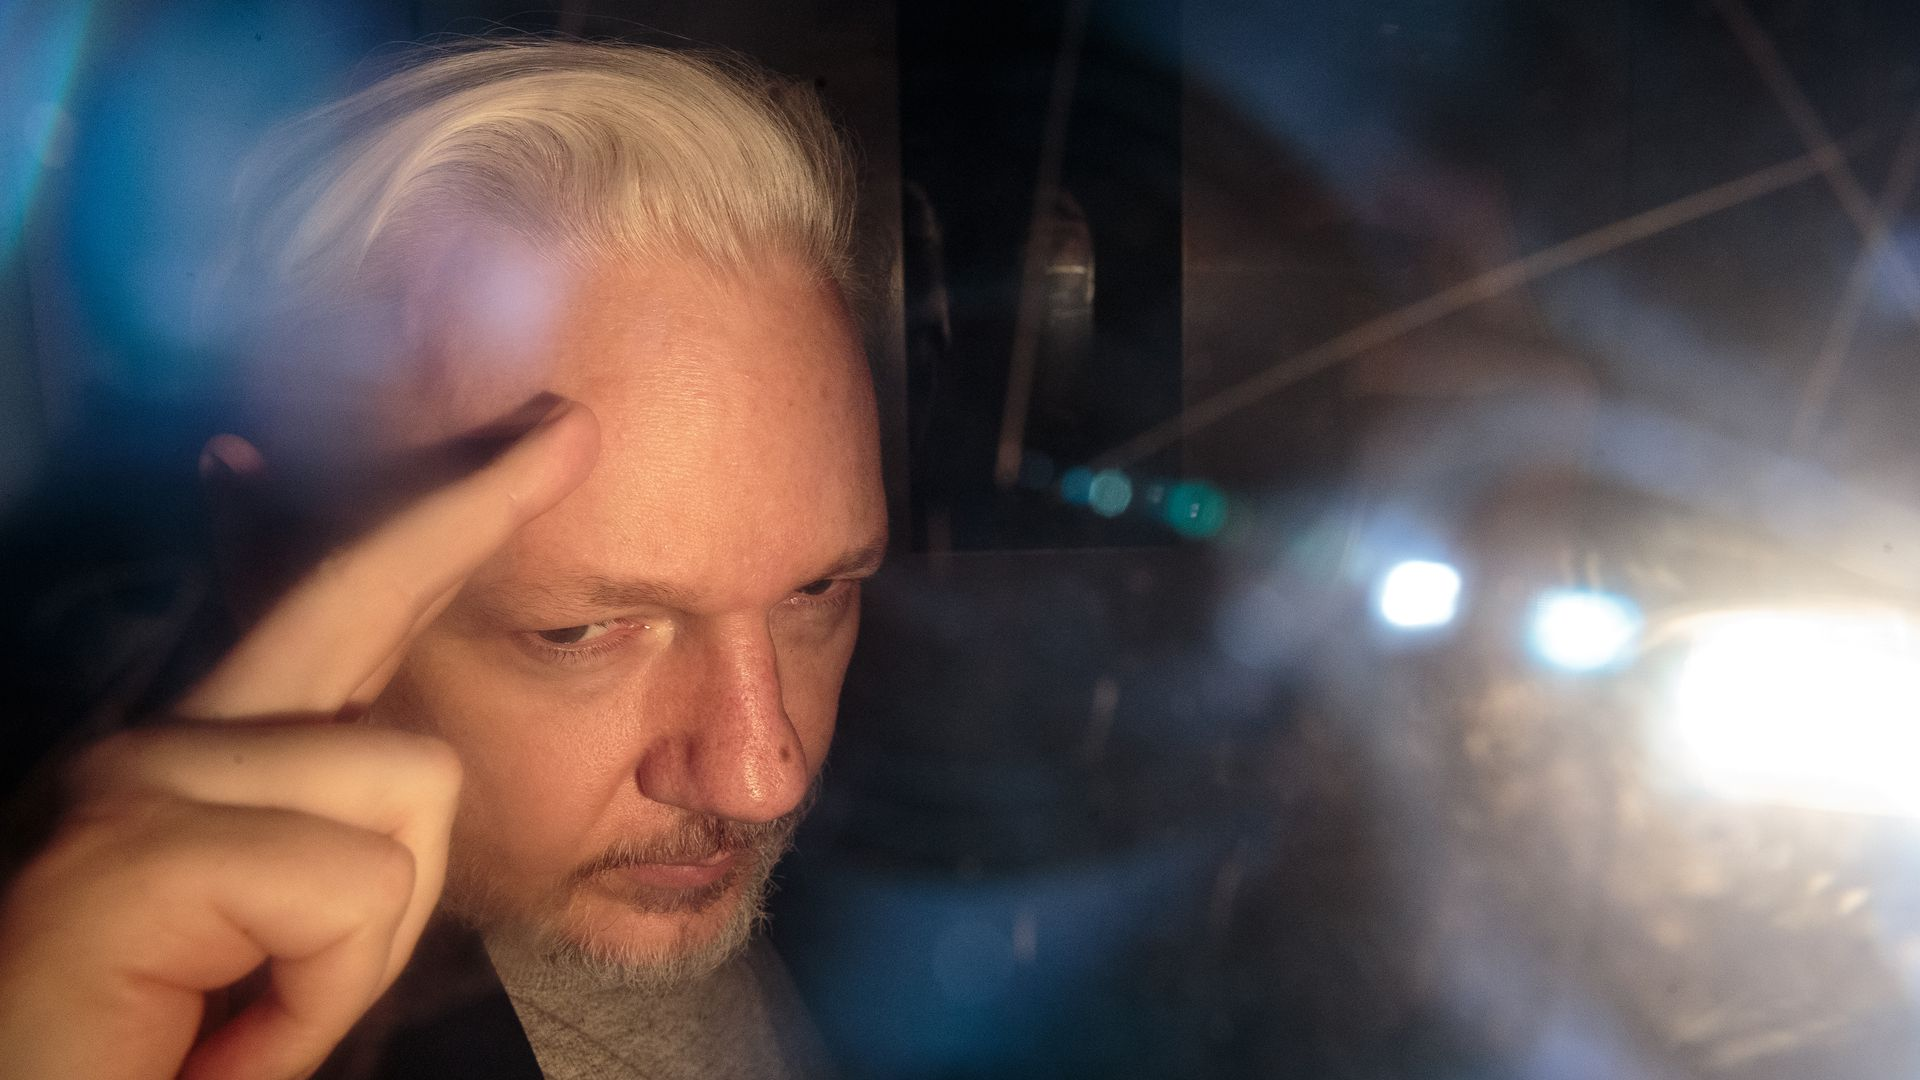 Julian Assange indicted on 17 new counts under Espionage Act